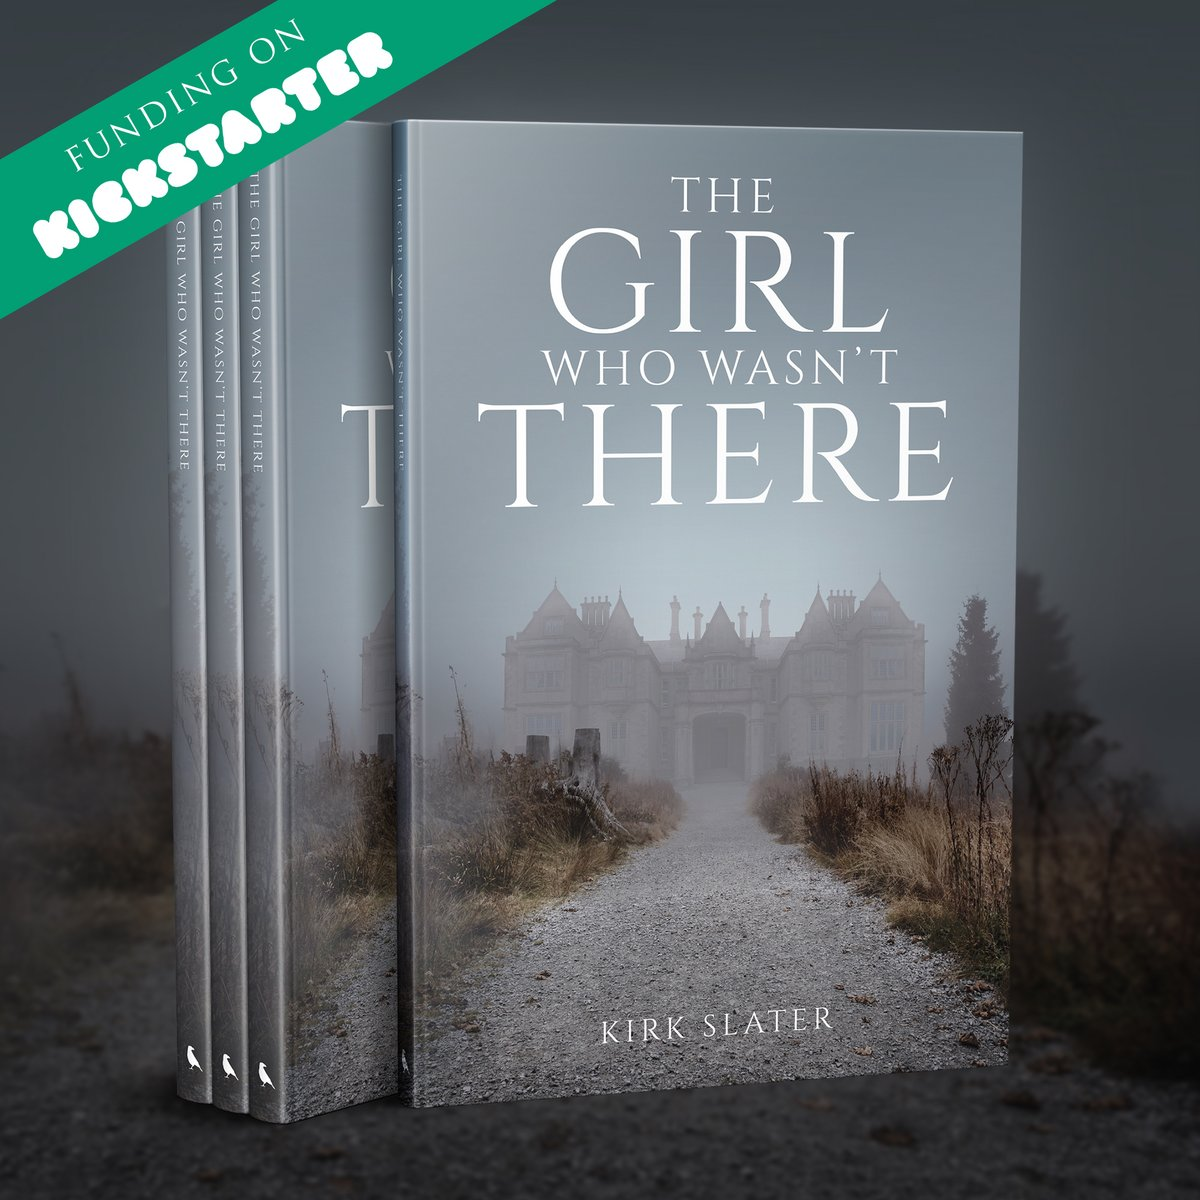 The Girl Who Wasn't There - A Victorian ghost story, is LIVE ON KICKSTARTER   A spooky story and a very unique add-on, check it out here http://kck.st/2DiHosz #kickstarter #kickstartercampaign #tuesdaybackers #52ravens #story #selfpublishing #writerscommunity #scarystories pic.twitter.com/1djHsOsyvs